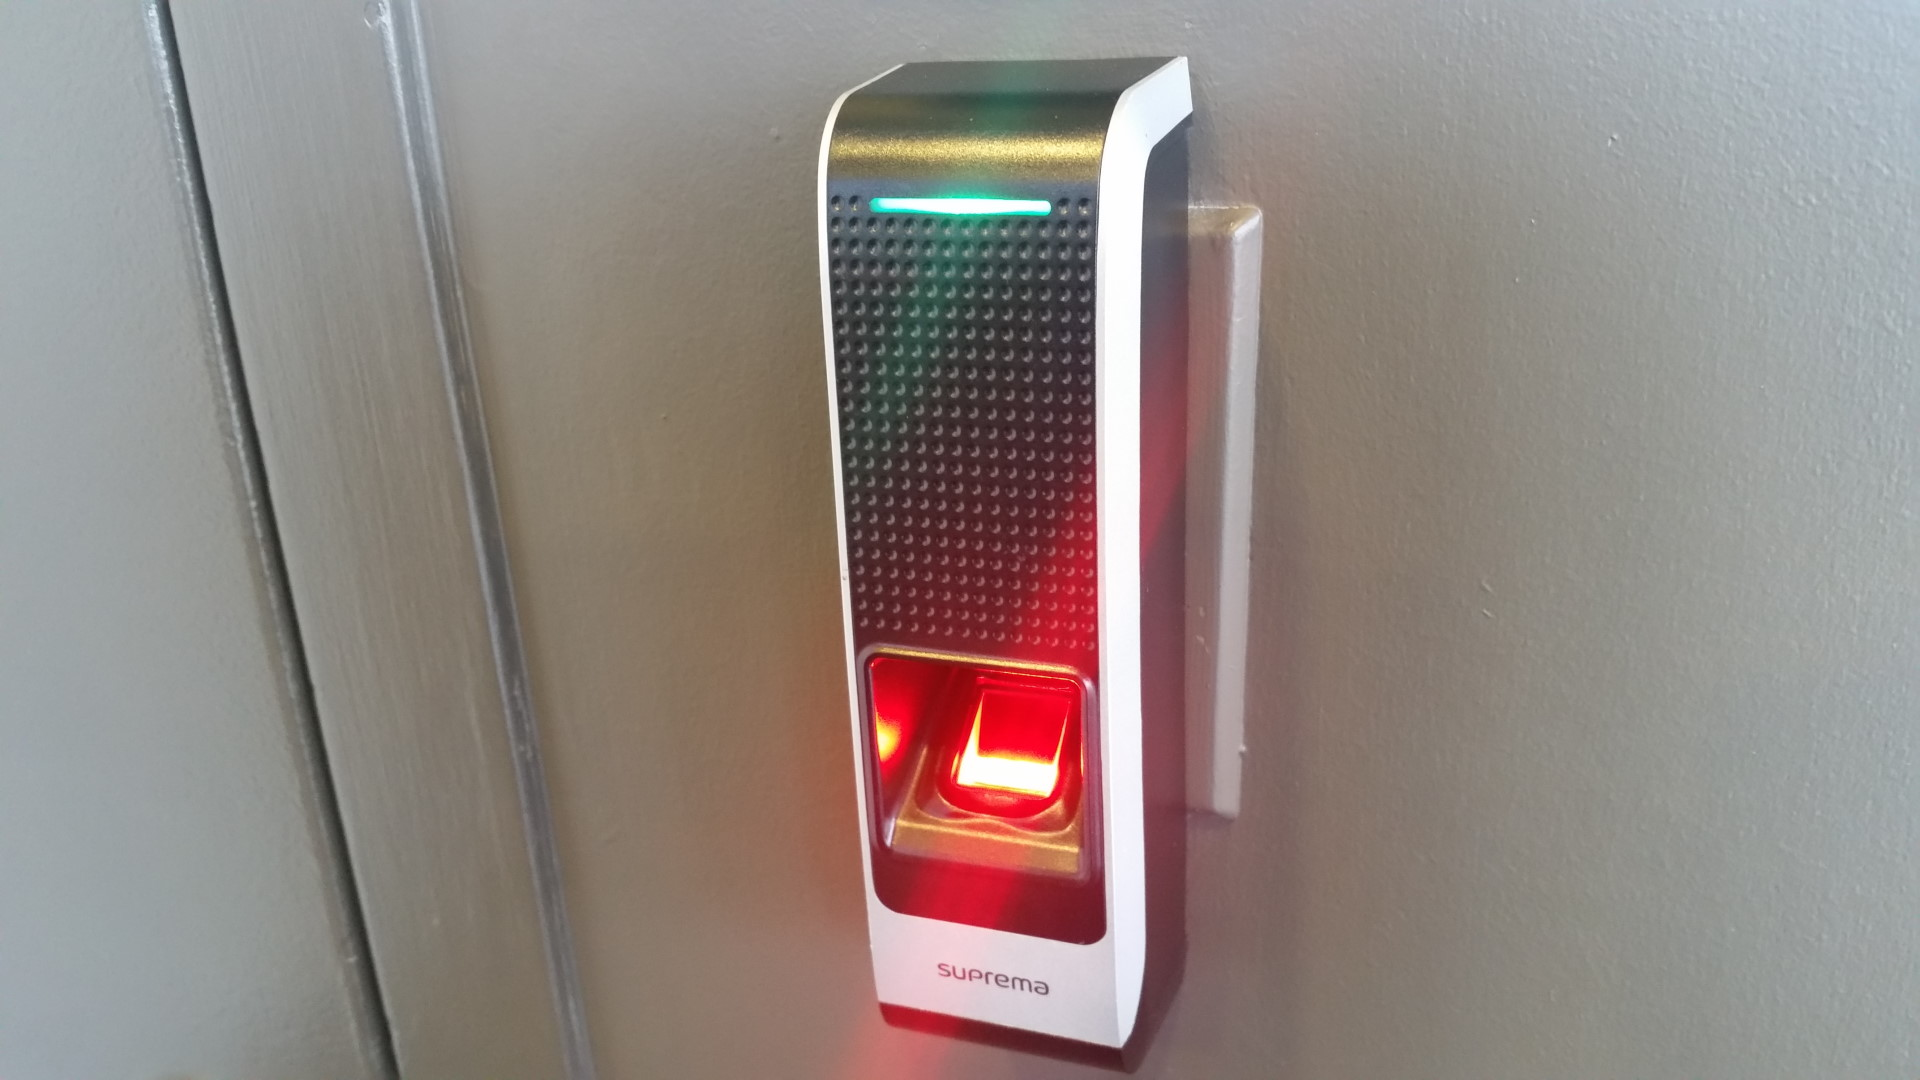 data centre thumb scanner security decorative